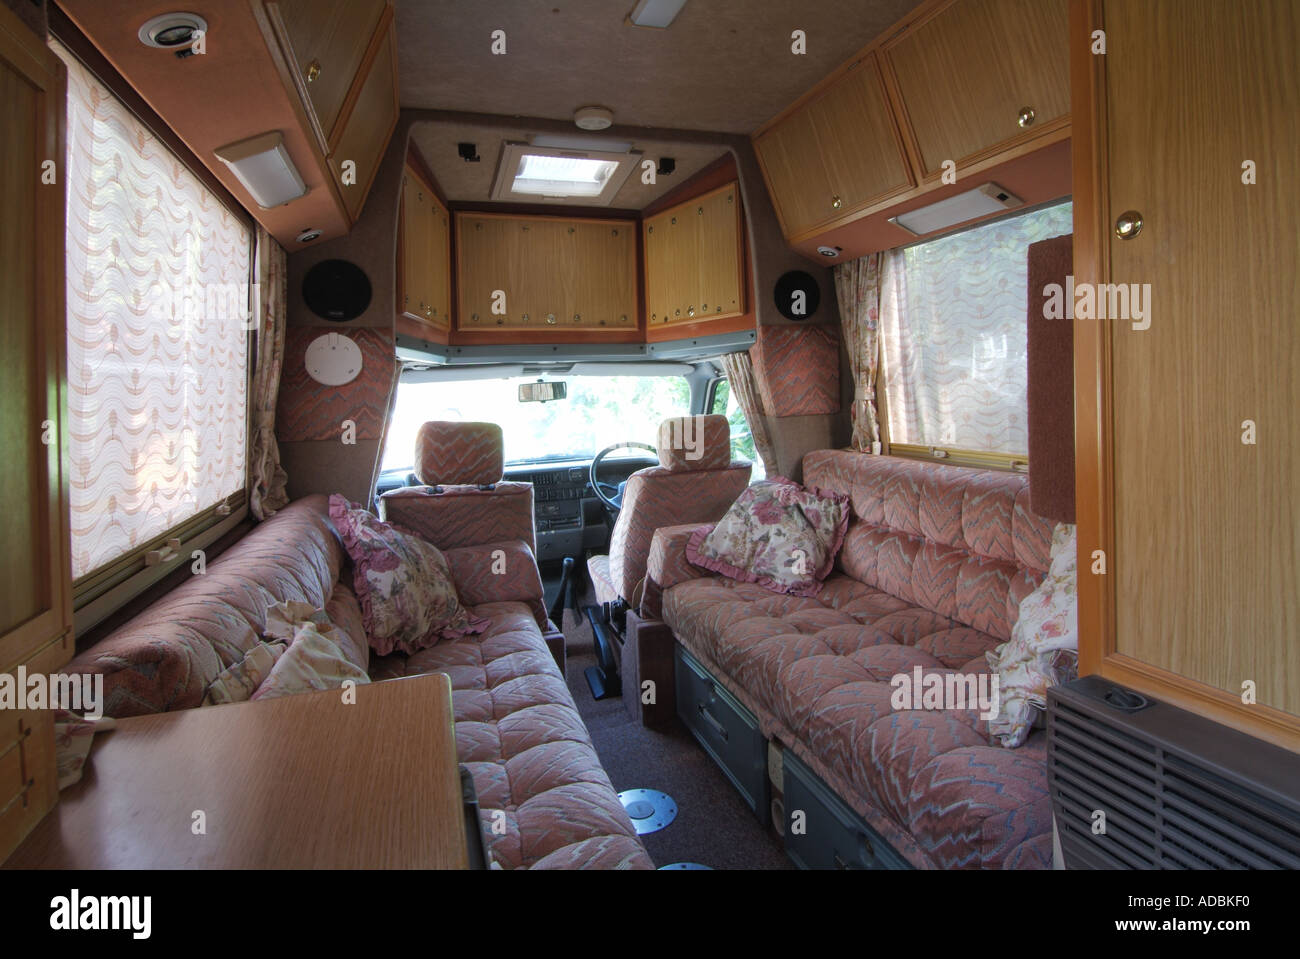 Interior Of Two Birth Coach Built Camper Van Viewed Towards Cab End